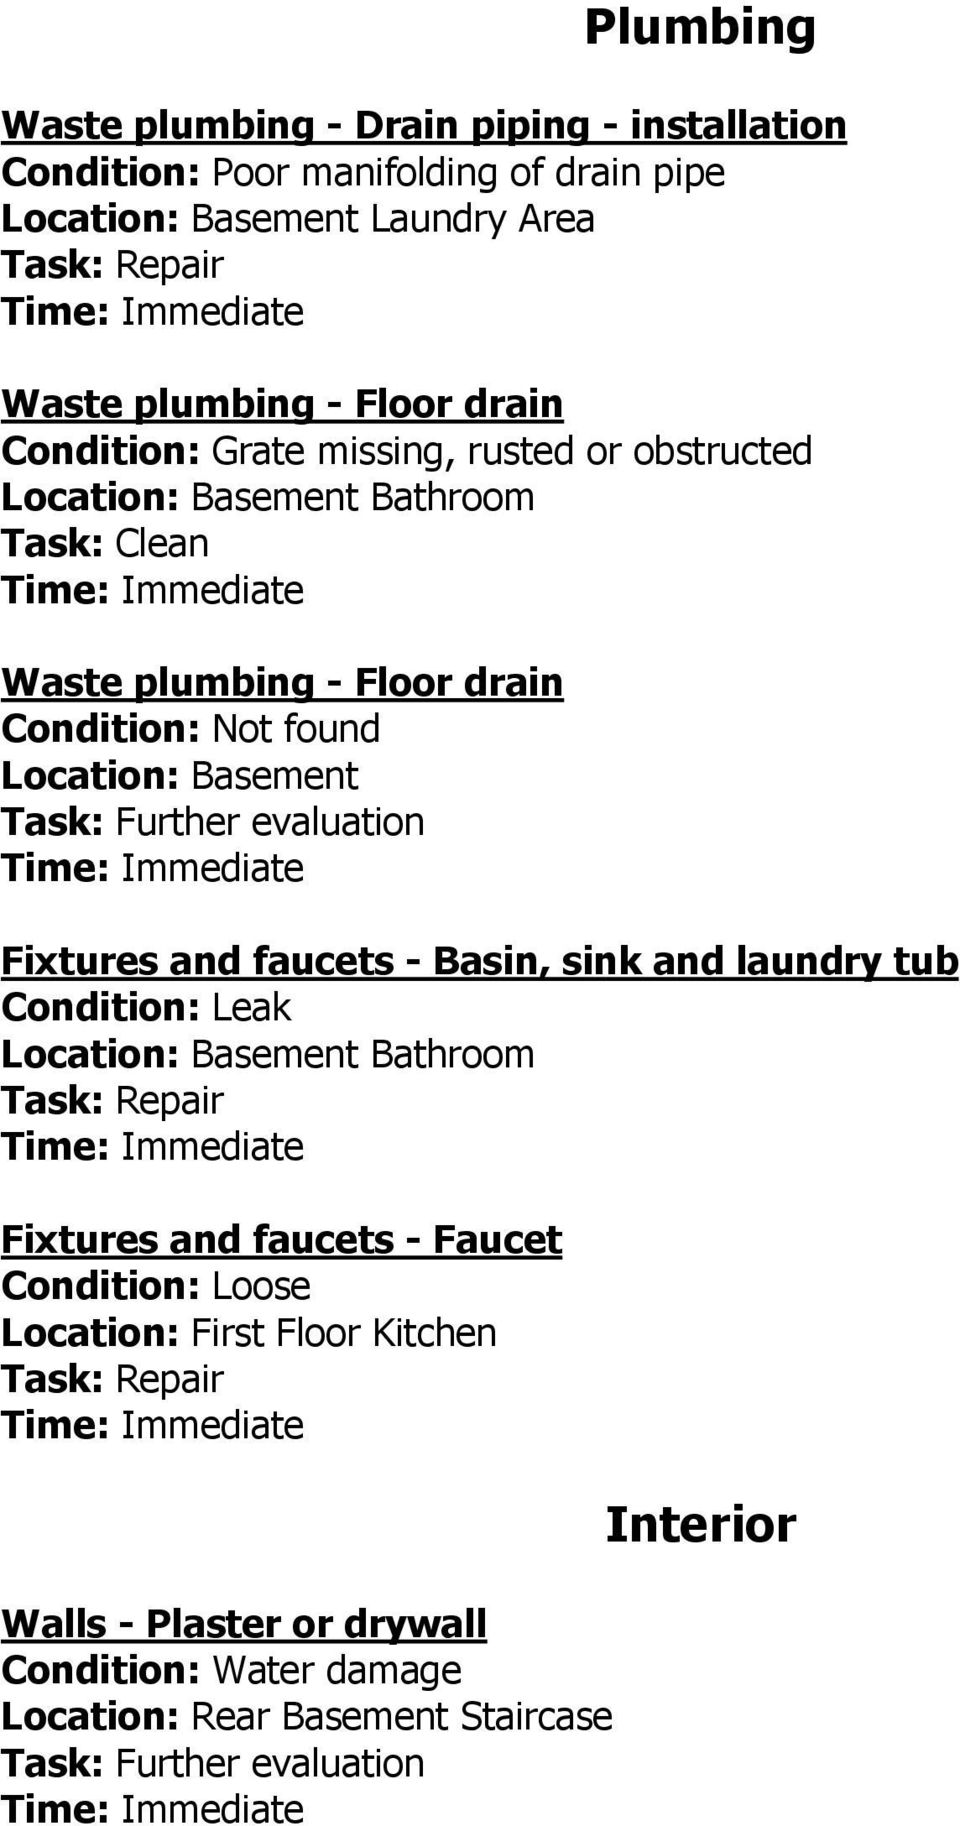 Condition: Not found Location: Basement Fixtures and faucets - Basin, sink and laundry tub Condition: Leak Fixtures and